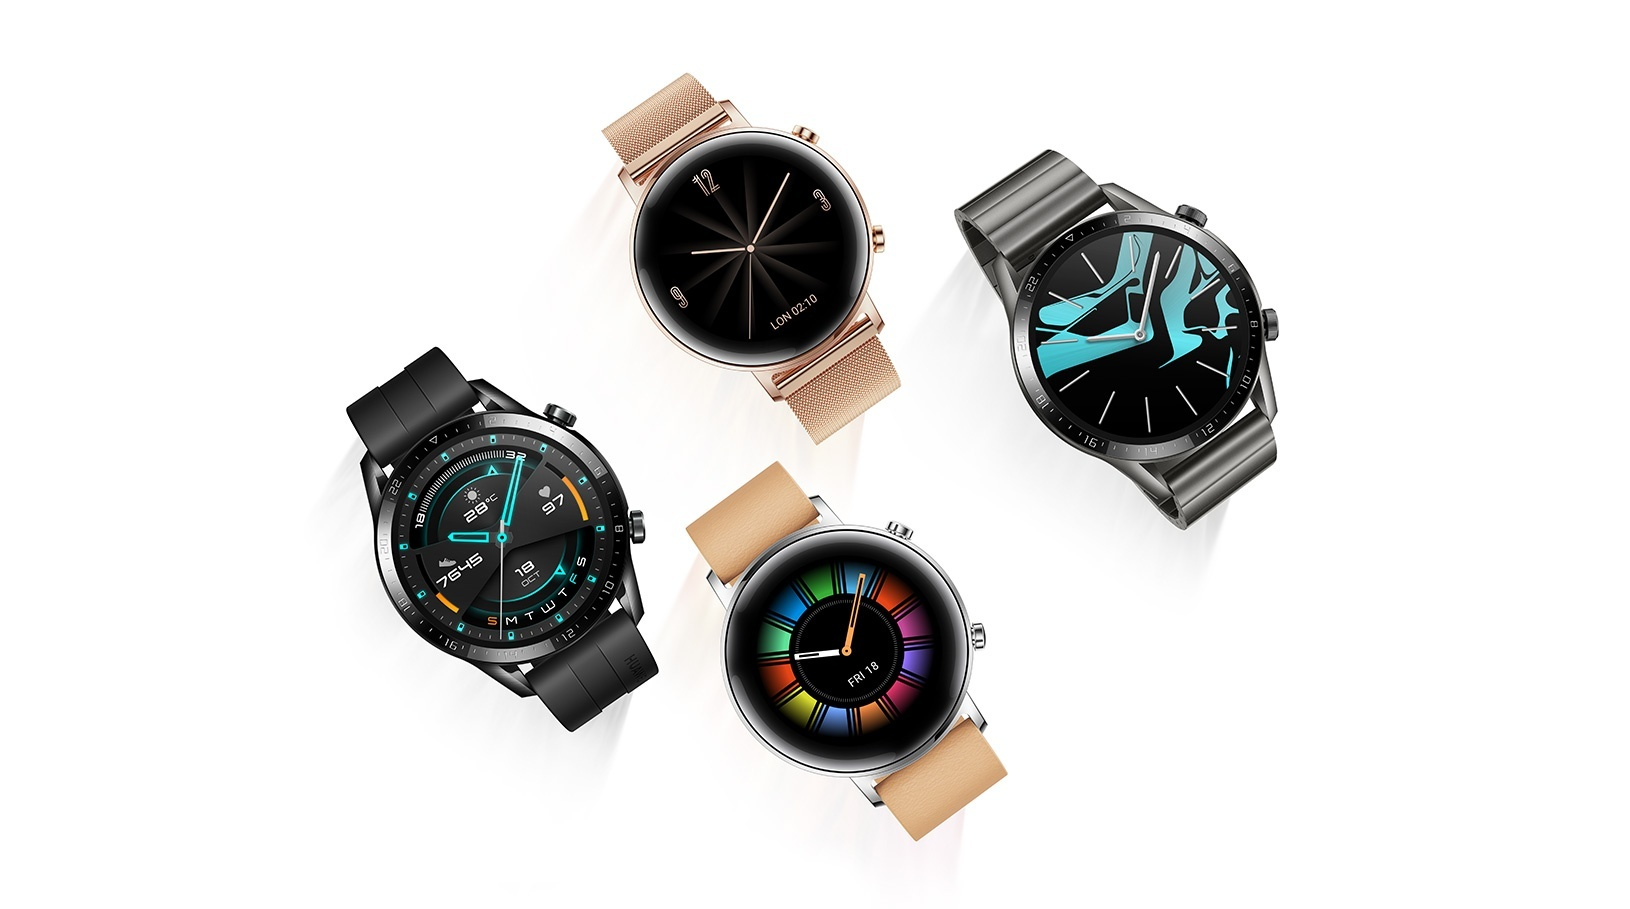 Huawei watch gt2 sports edition